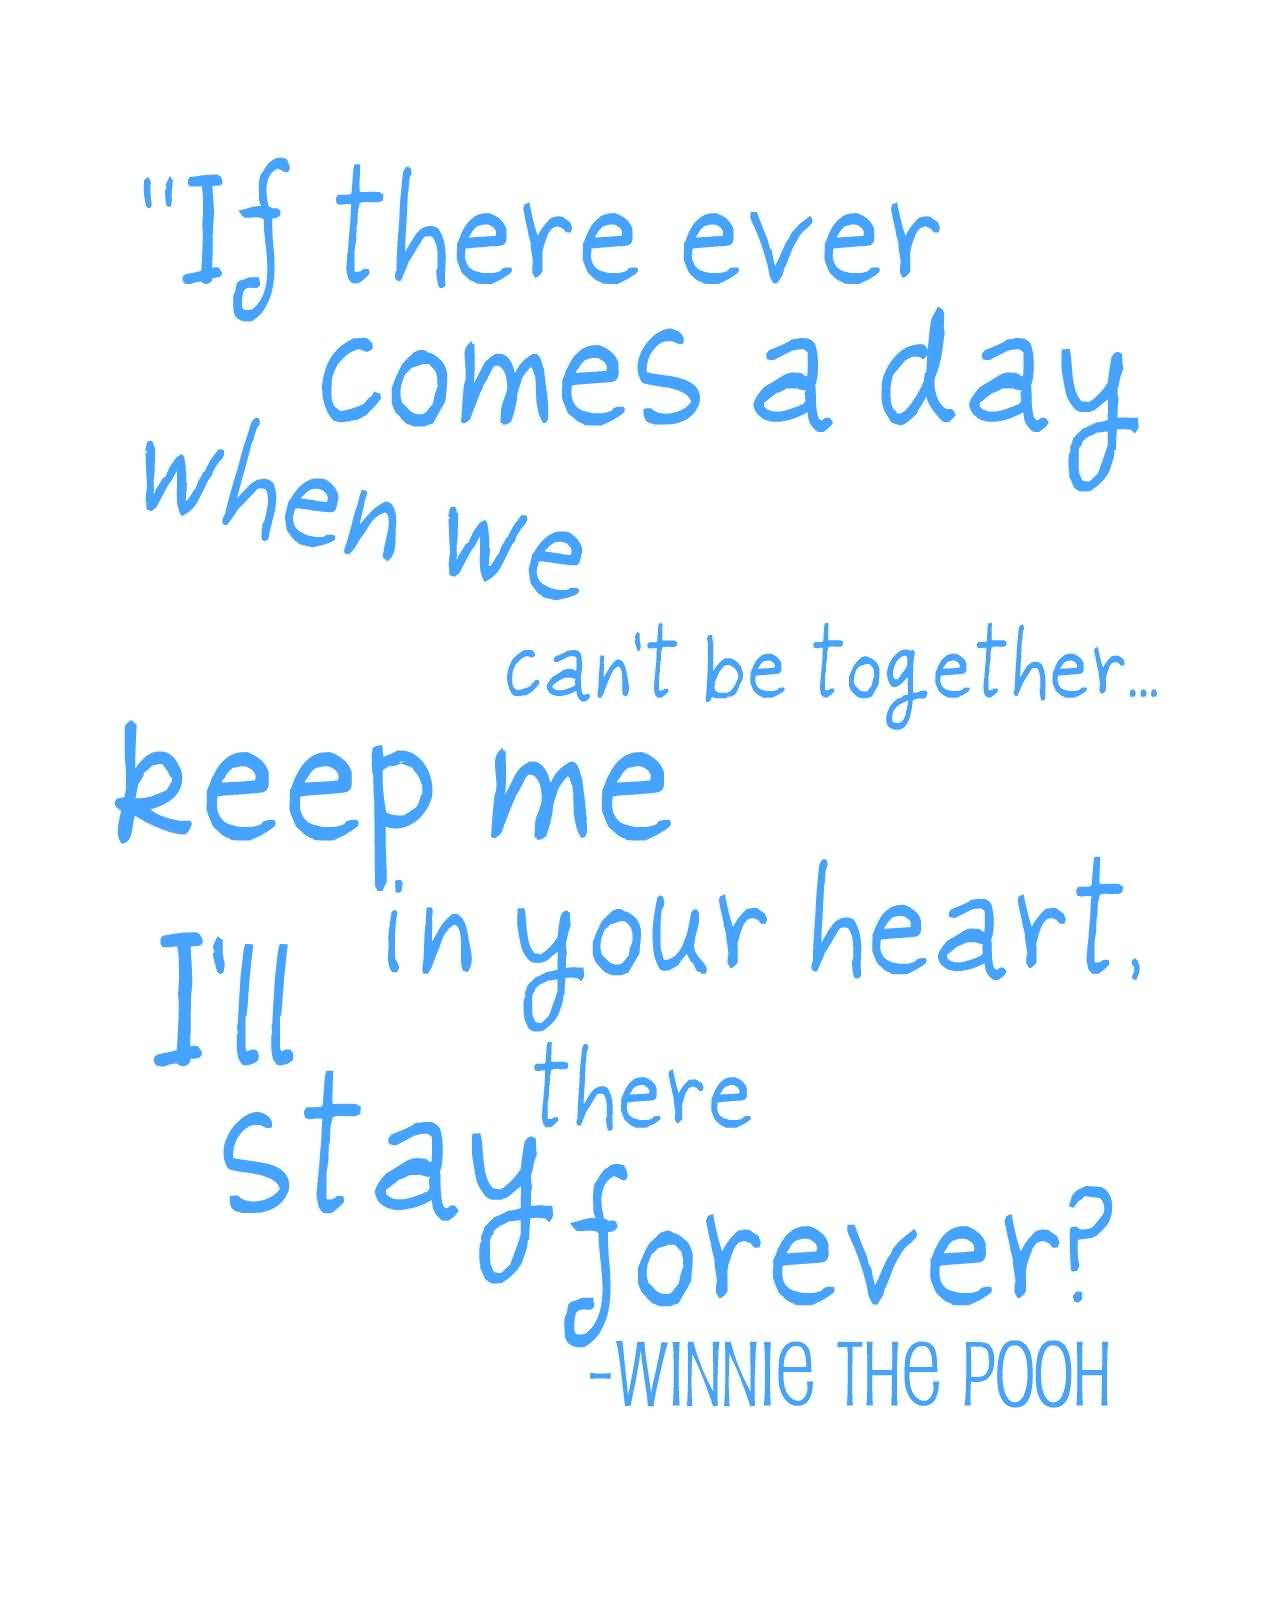 If There Ever Comes A Day When We Can't Be Together Keep Me - Winnie The Pooh